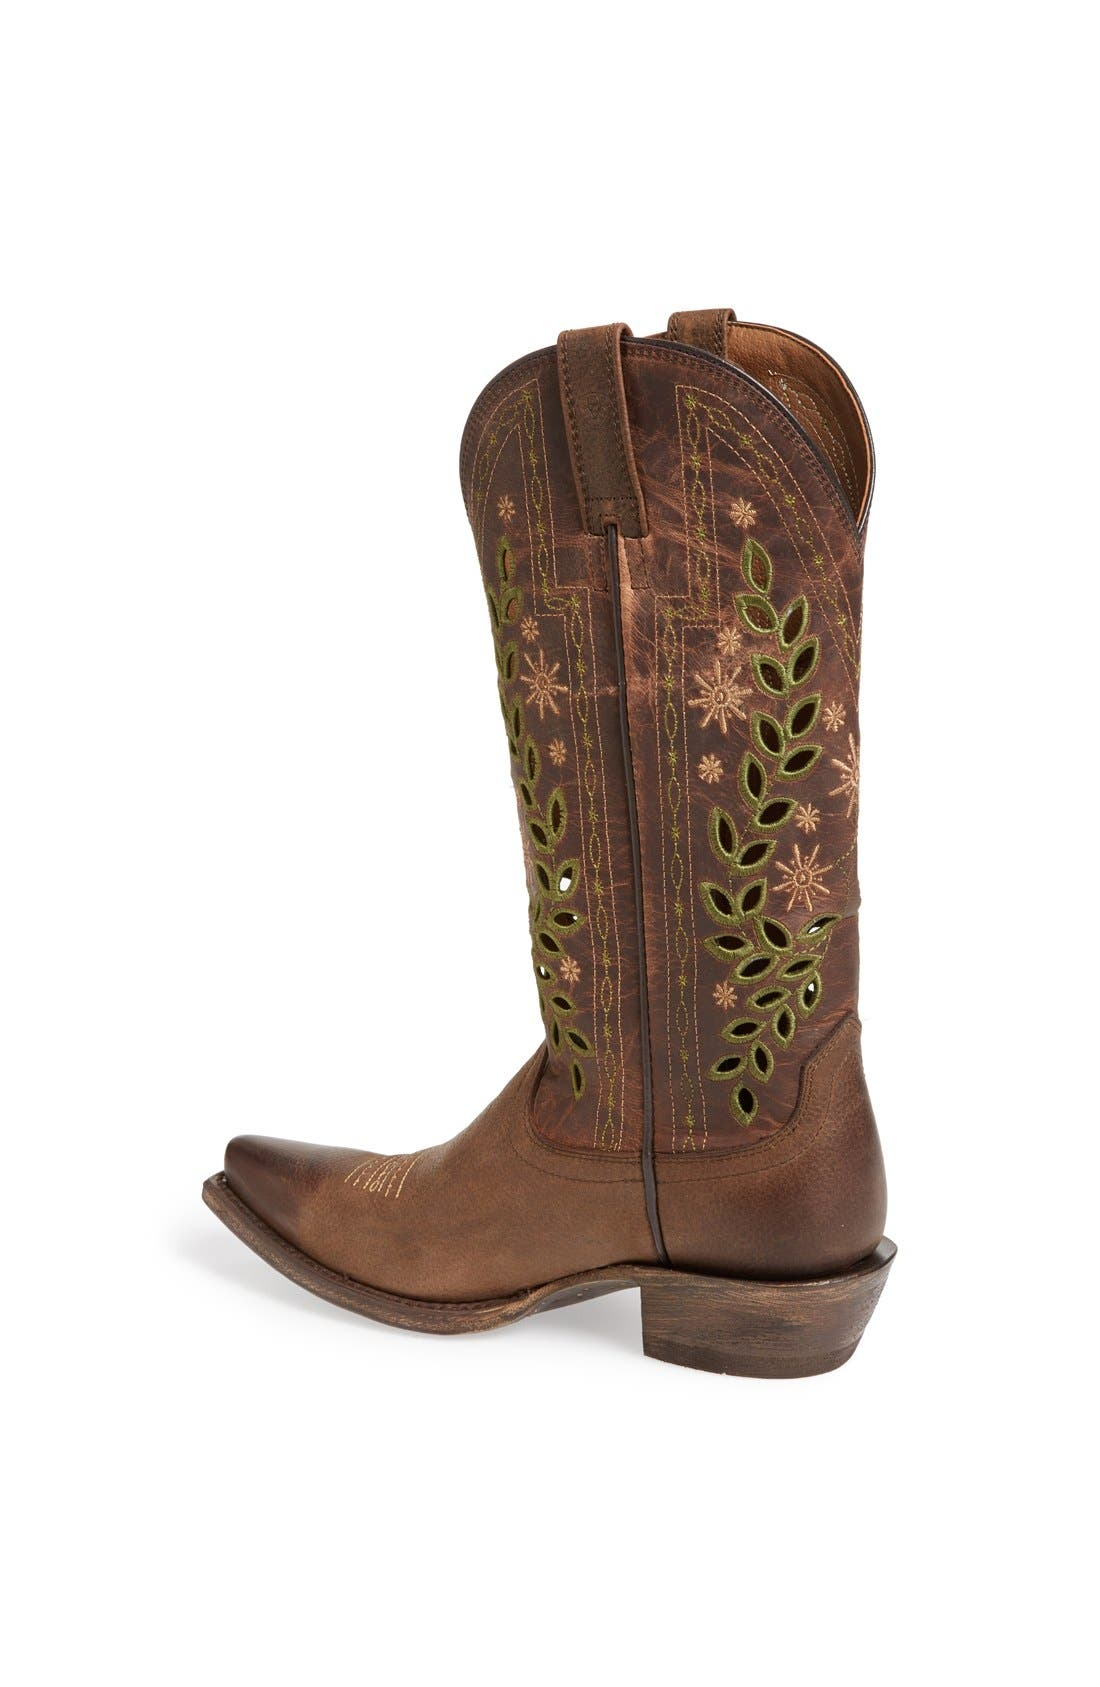 Alternate Image 2  - Ariat 'Arrosa' Embroidered Cutout Western Pointed Toe Boot